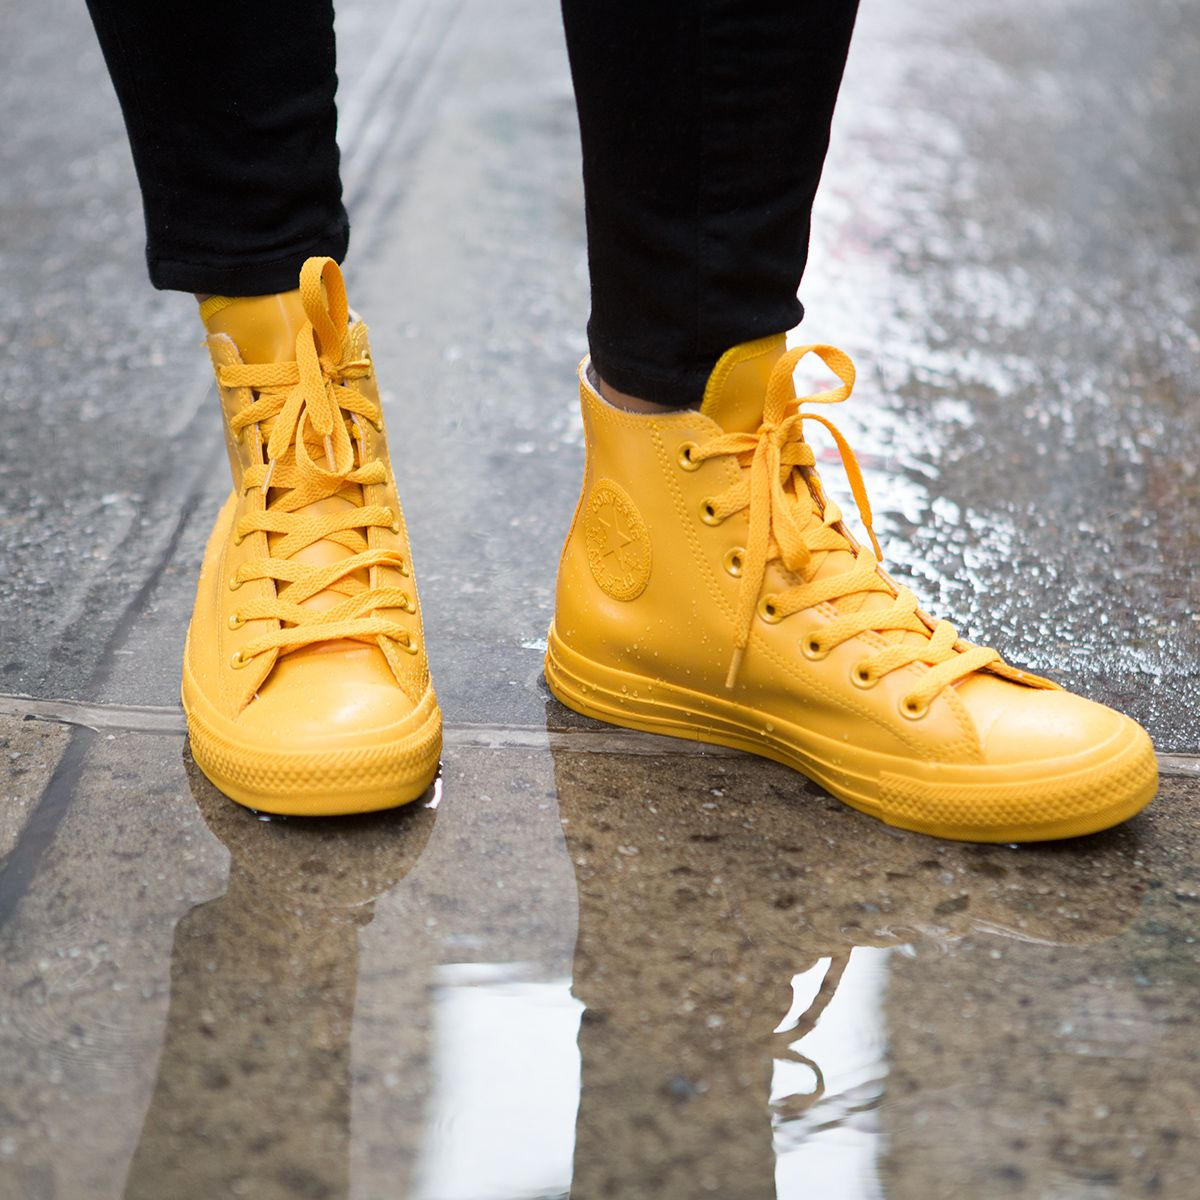 7e71a3498b1 On this dreary rainy day, we're stepping into puddles, wet-free, with a  pair of cheery yellow rubber chucks, brought to you by Converse's new All  Star ...